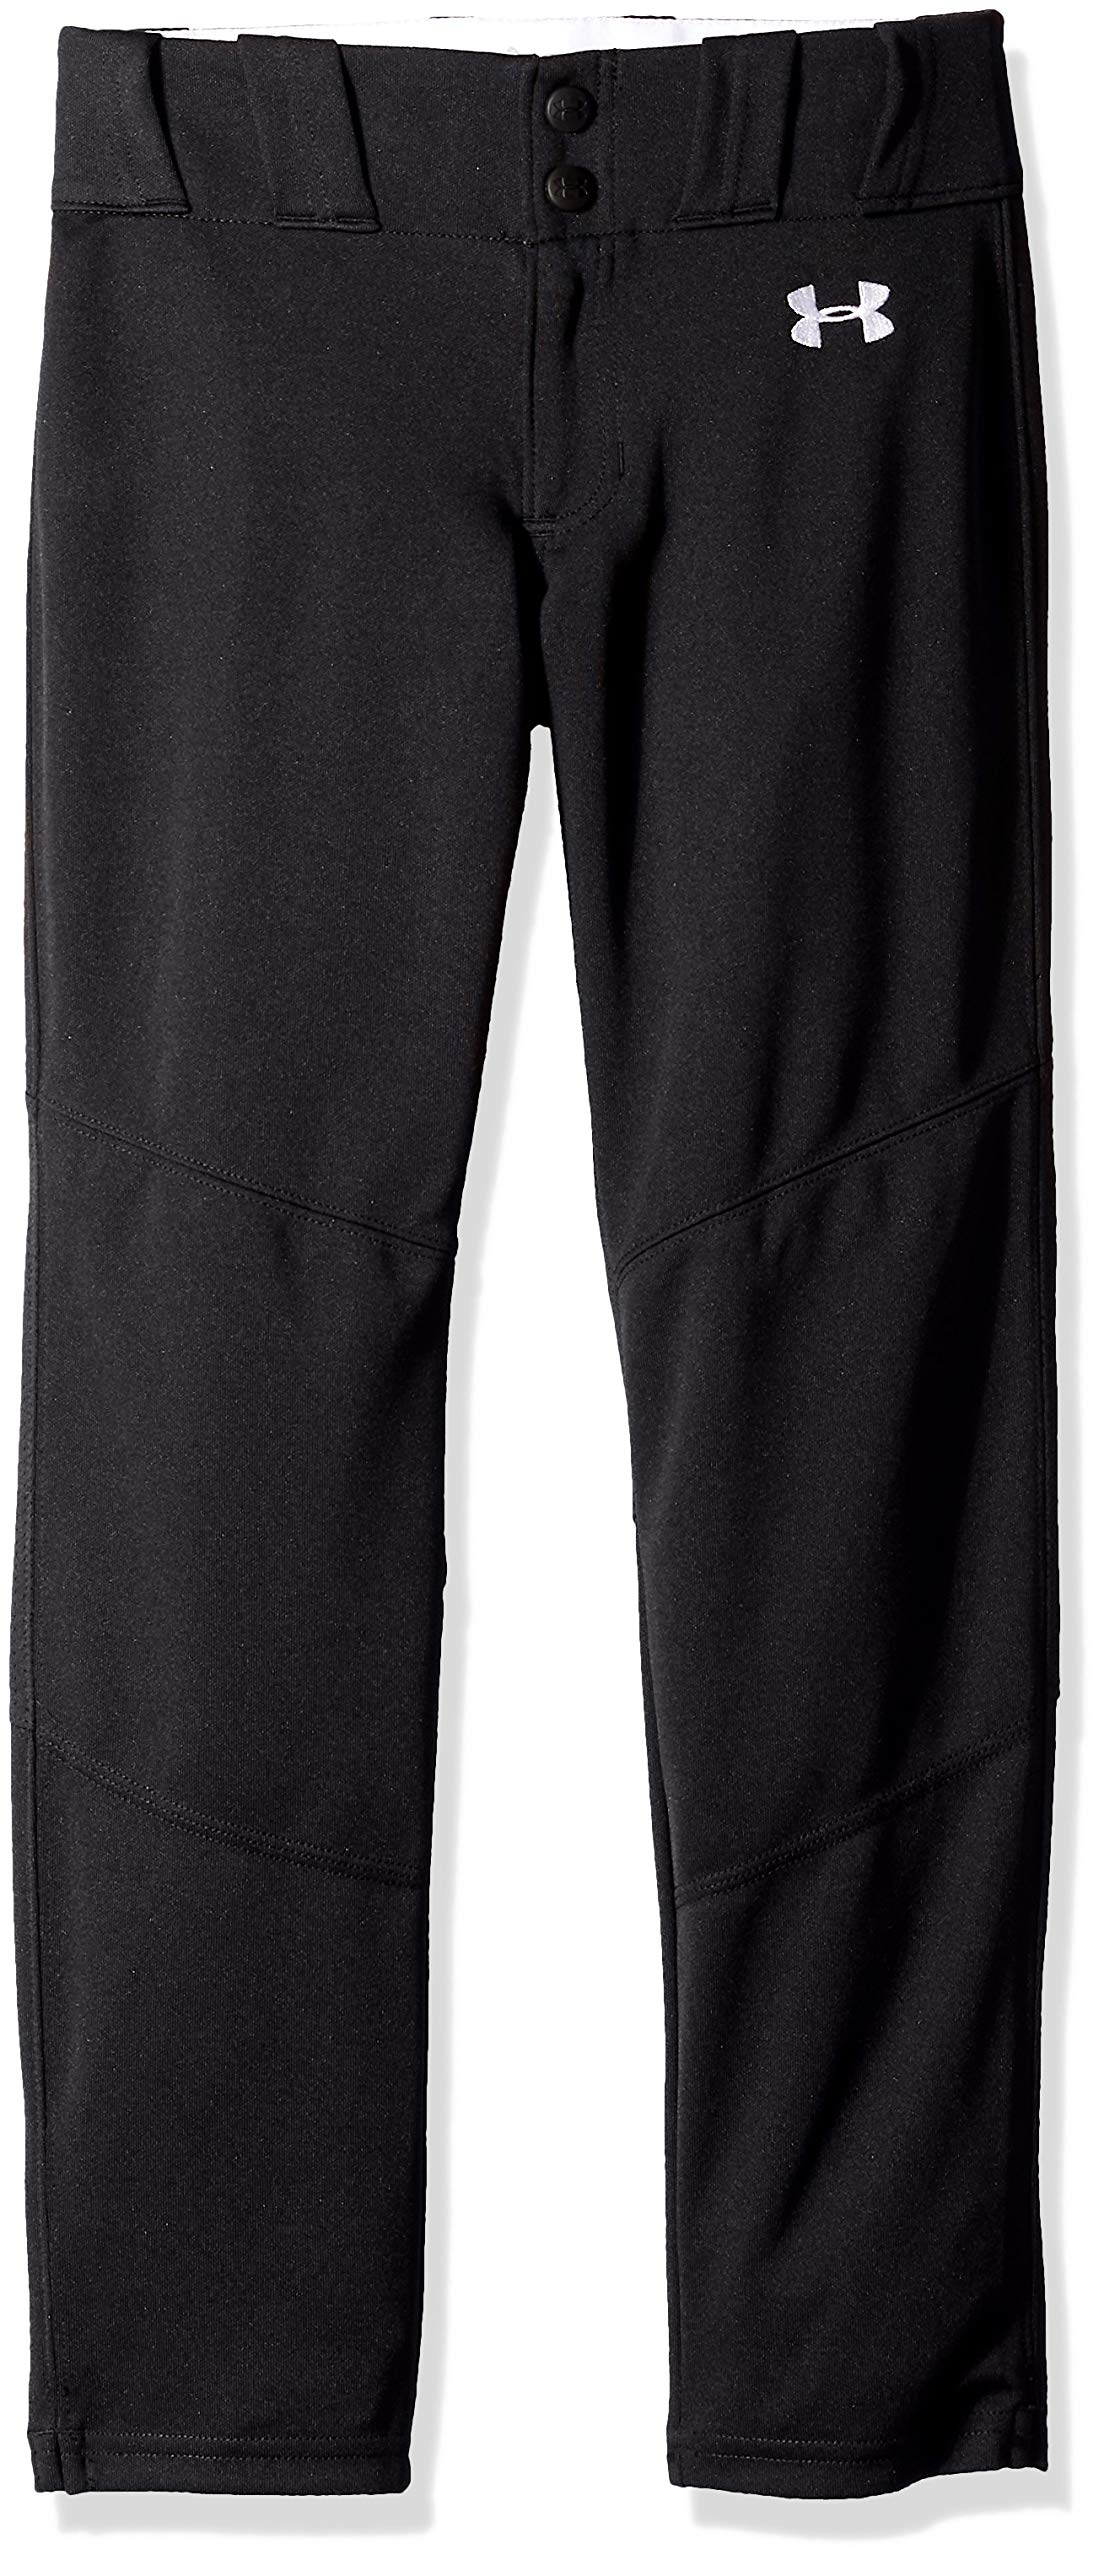 Under Armour Boys IL Ace Relaxed Pants, Black (001)/White, Youth X-Small by Under Armour